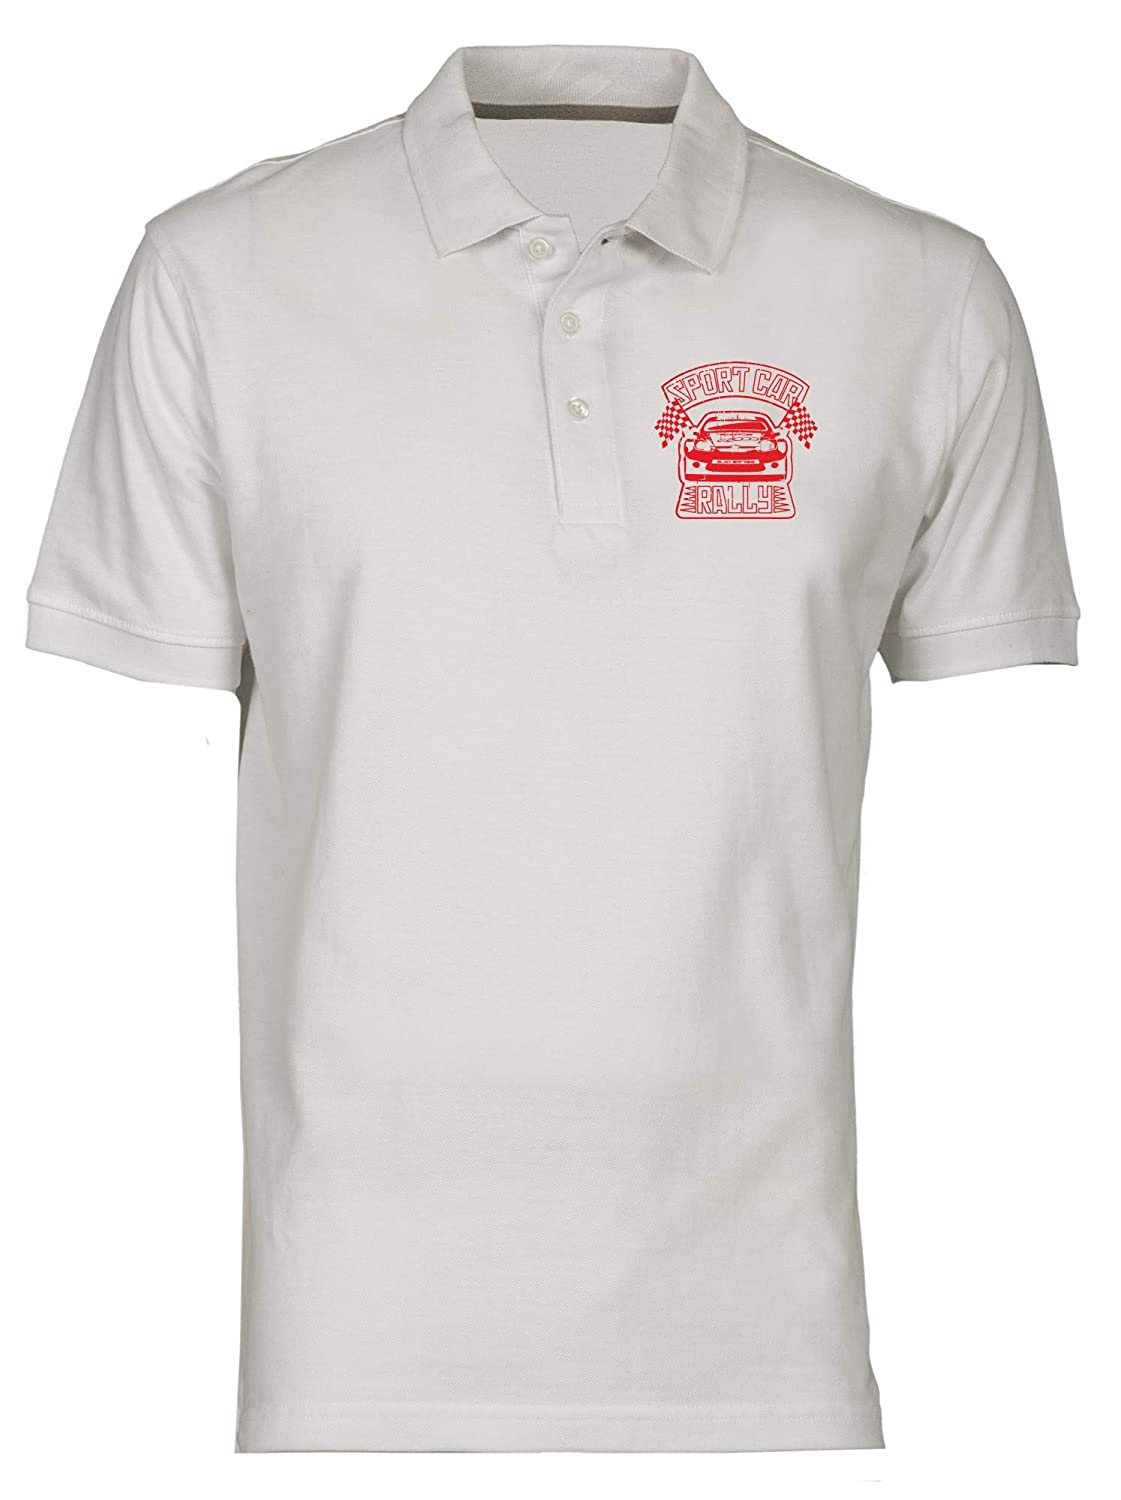 Polo por Hombre Blanco TB0051 Sport Car Rally: Amazon.es: Ropa y ...